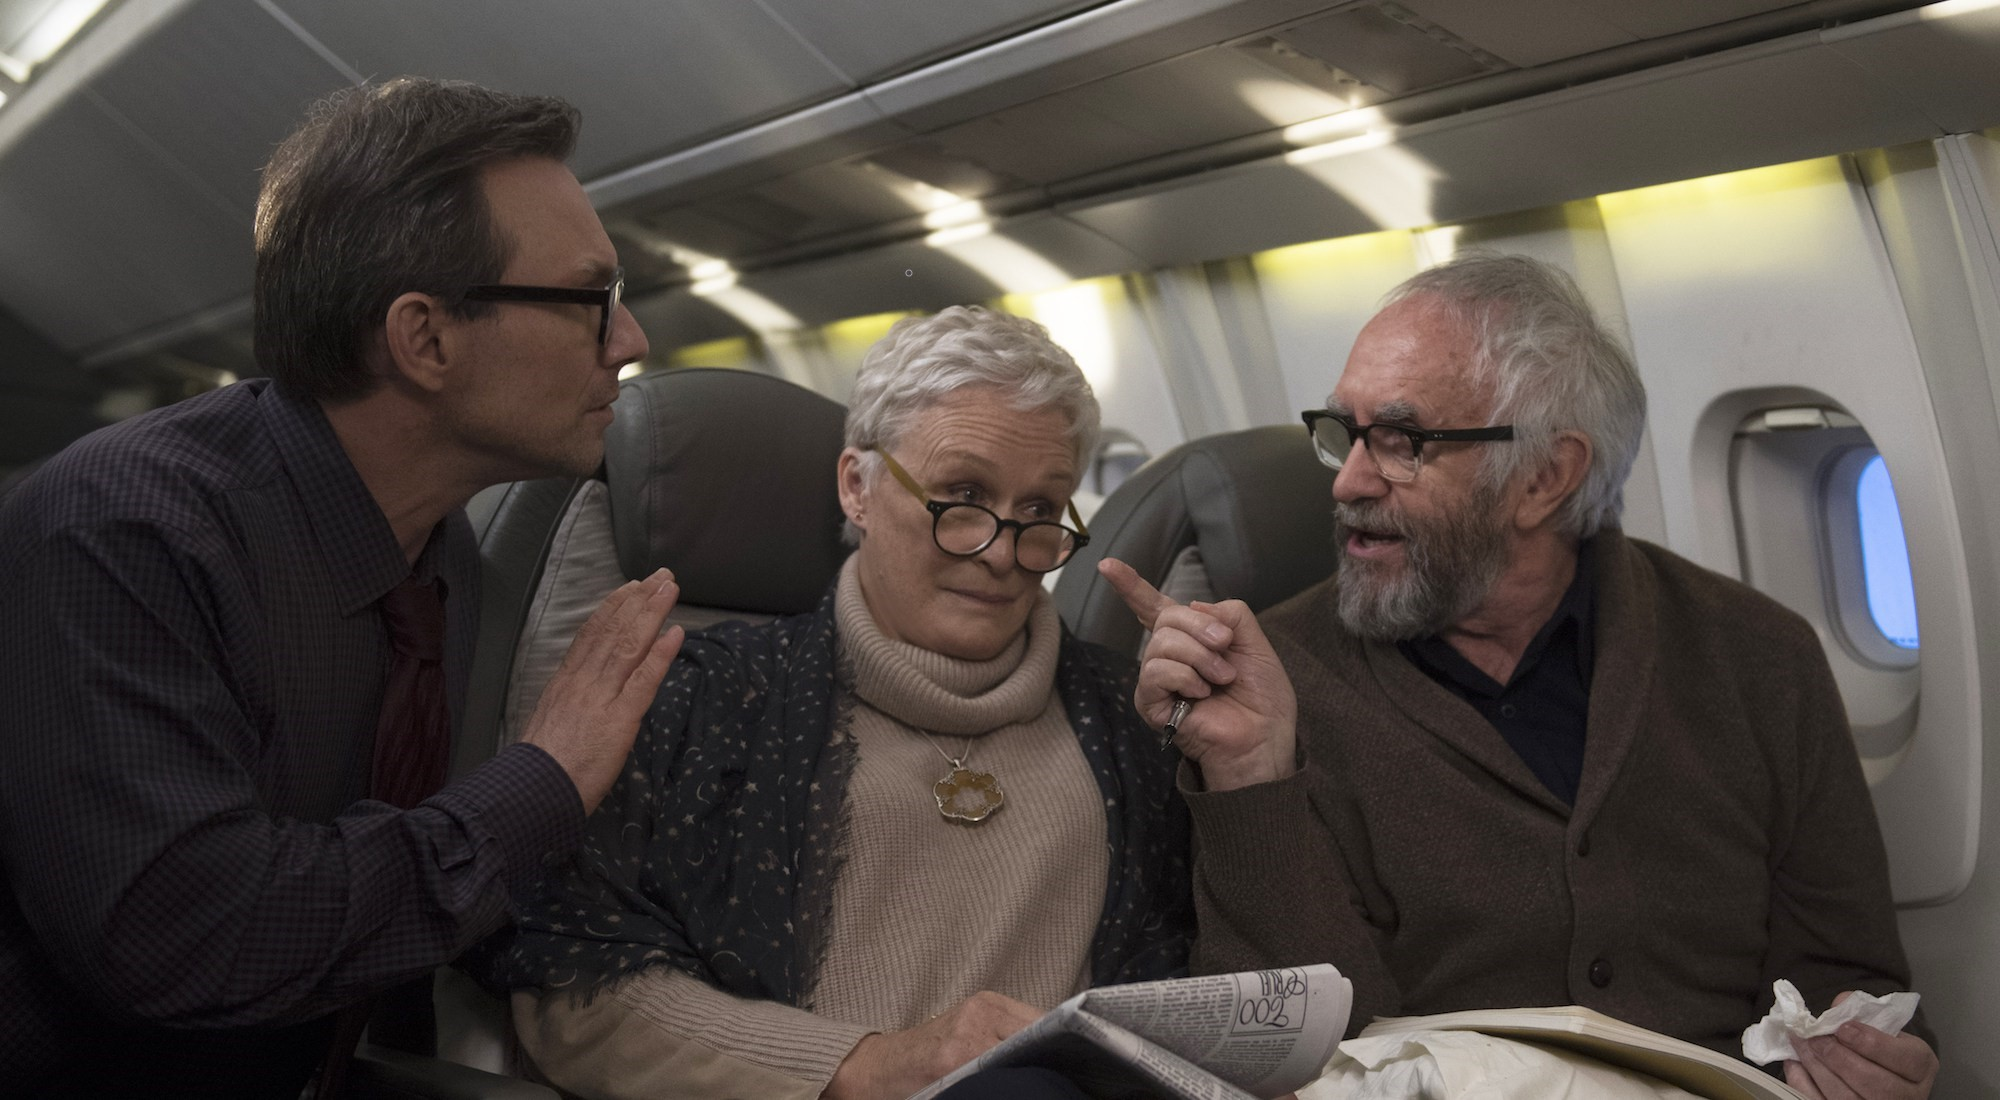 The Wife - Vivere nell'ombra: Glenn Close, Christian Slater e Jonathan Pryce in una scena del film